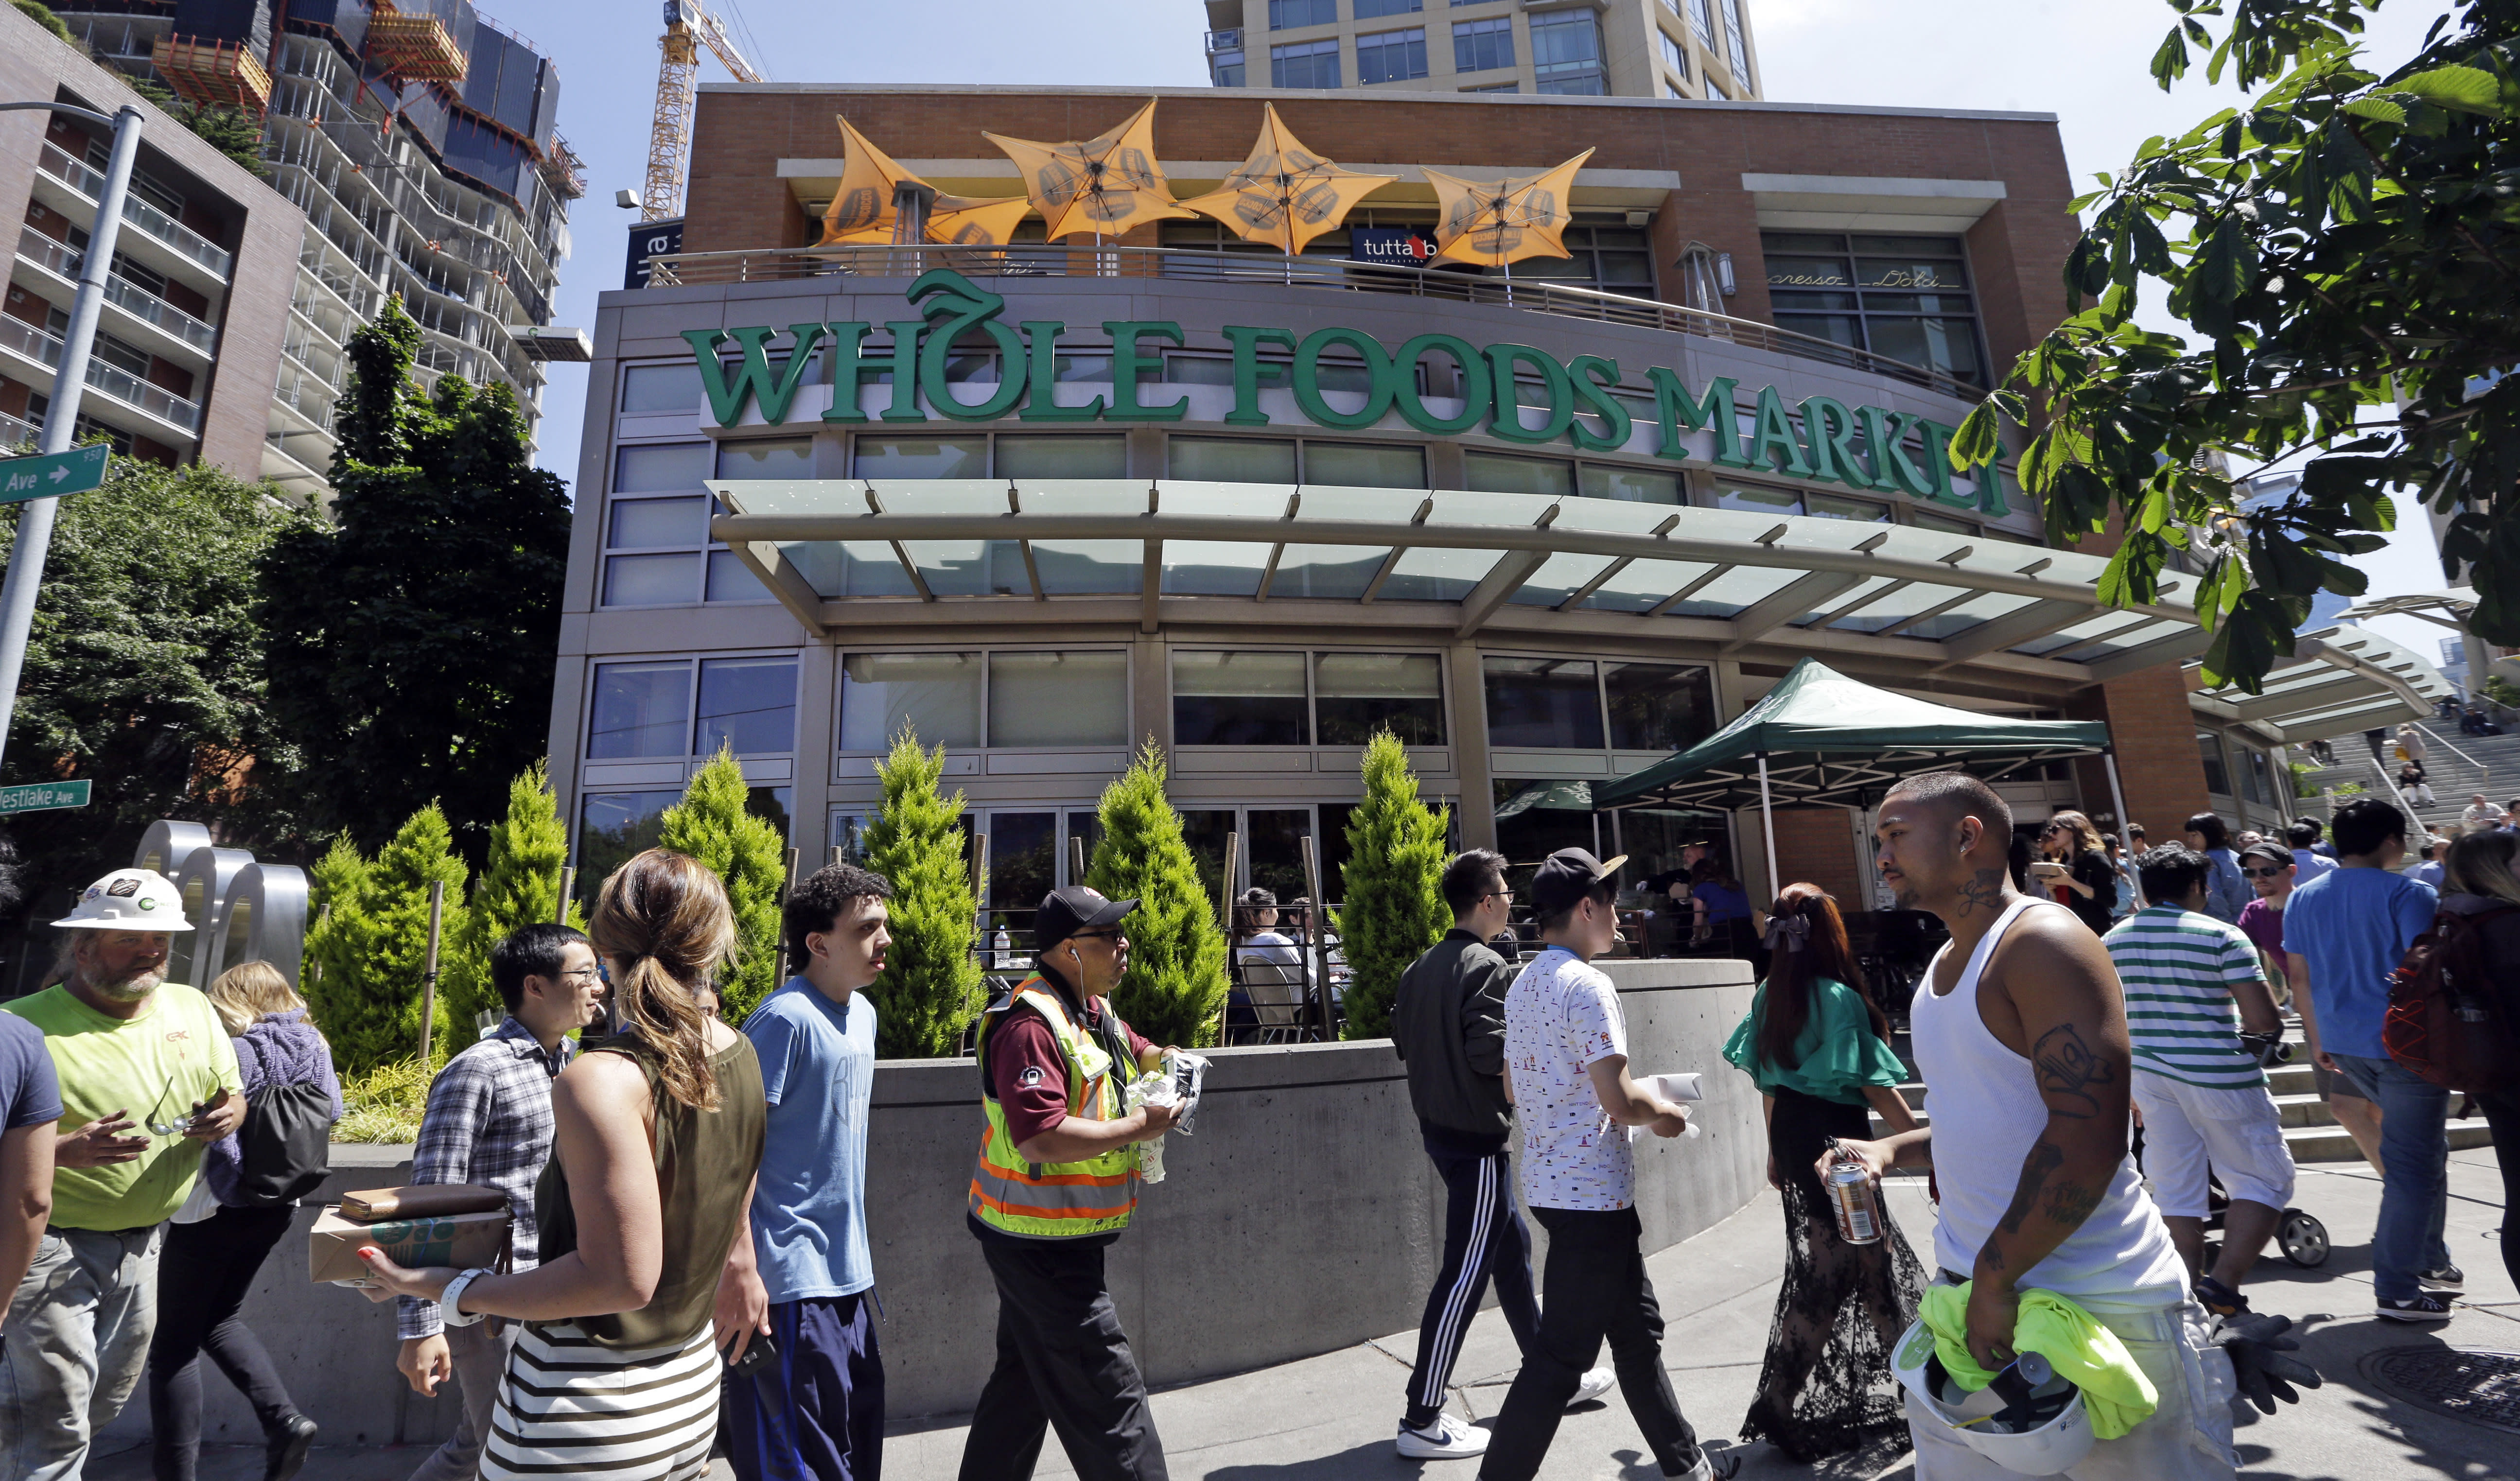 Pedestrians walk past a Whole Foods Market,